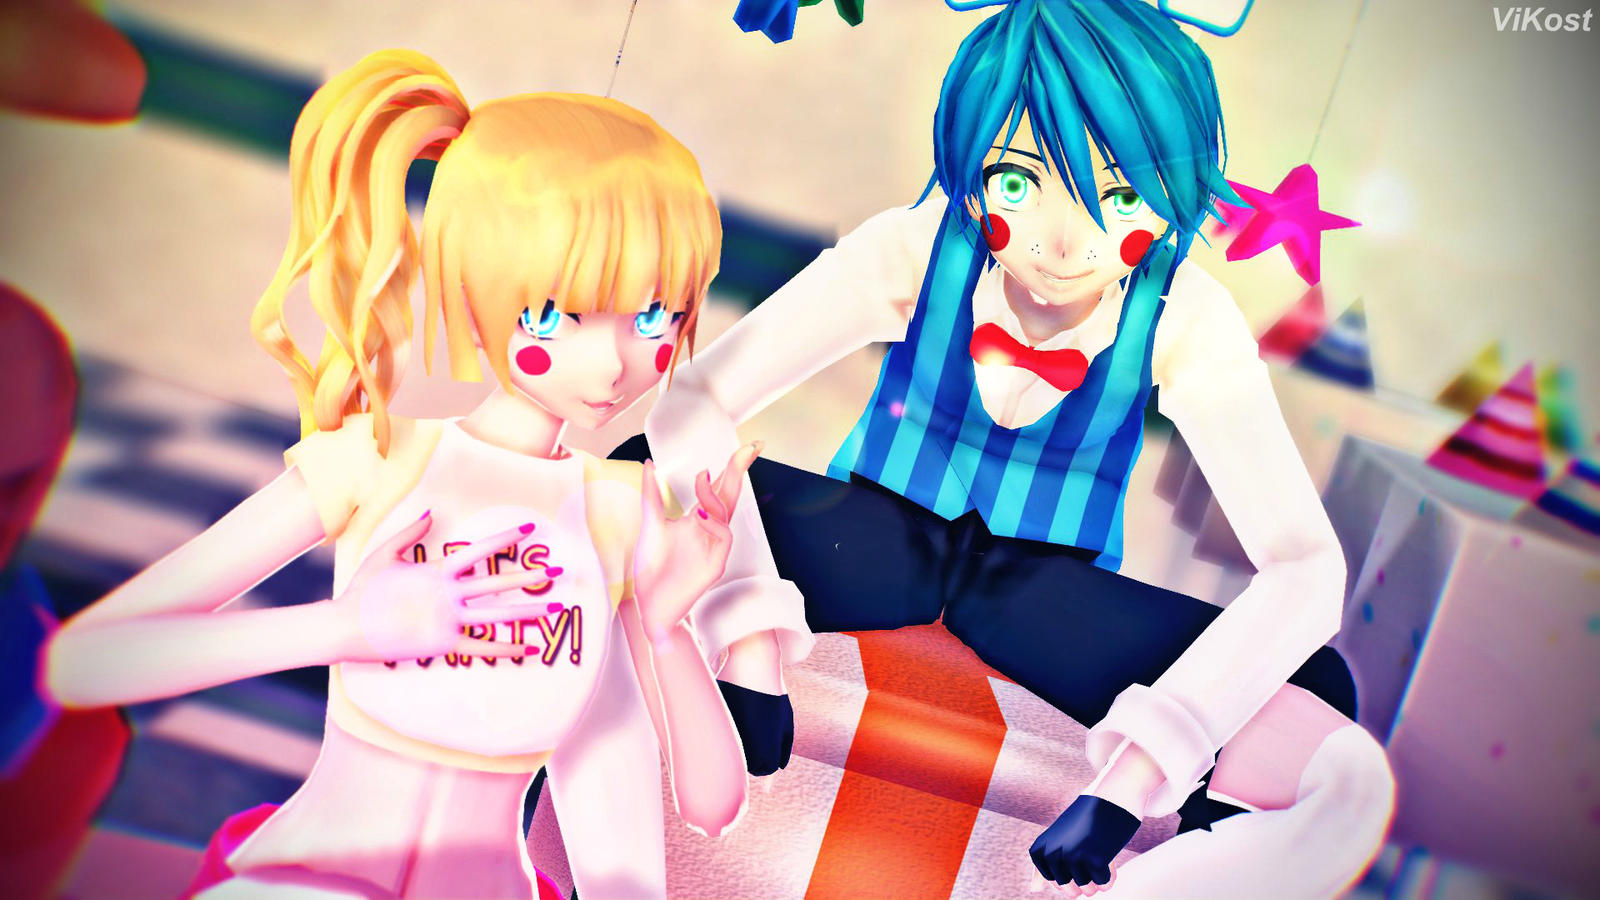 (MMD-FNAF) Toy Chica And Toy Bonnie By ViKost6 On DeviantArt